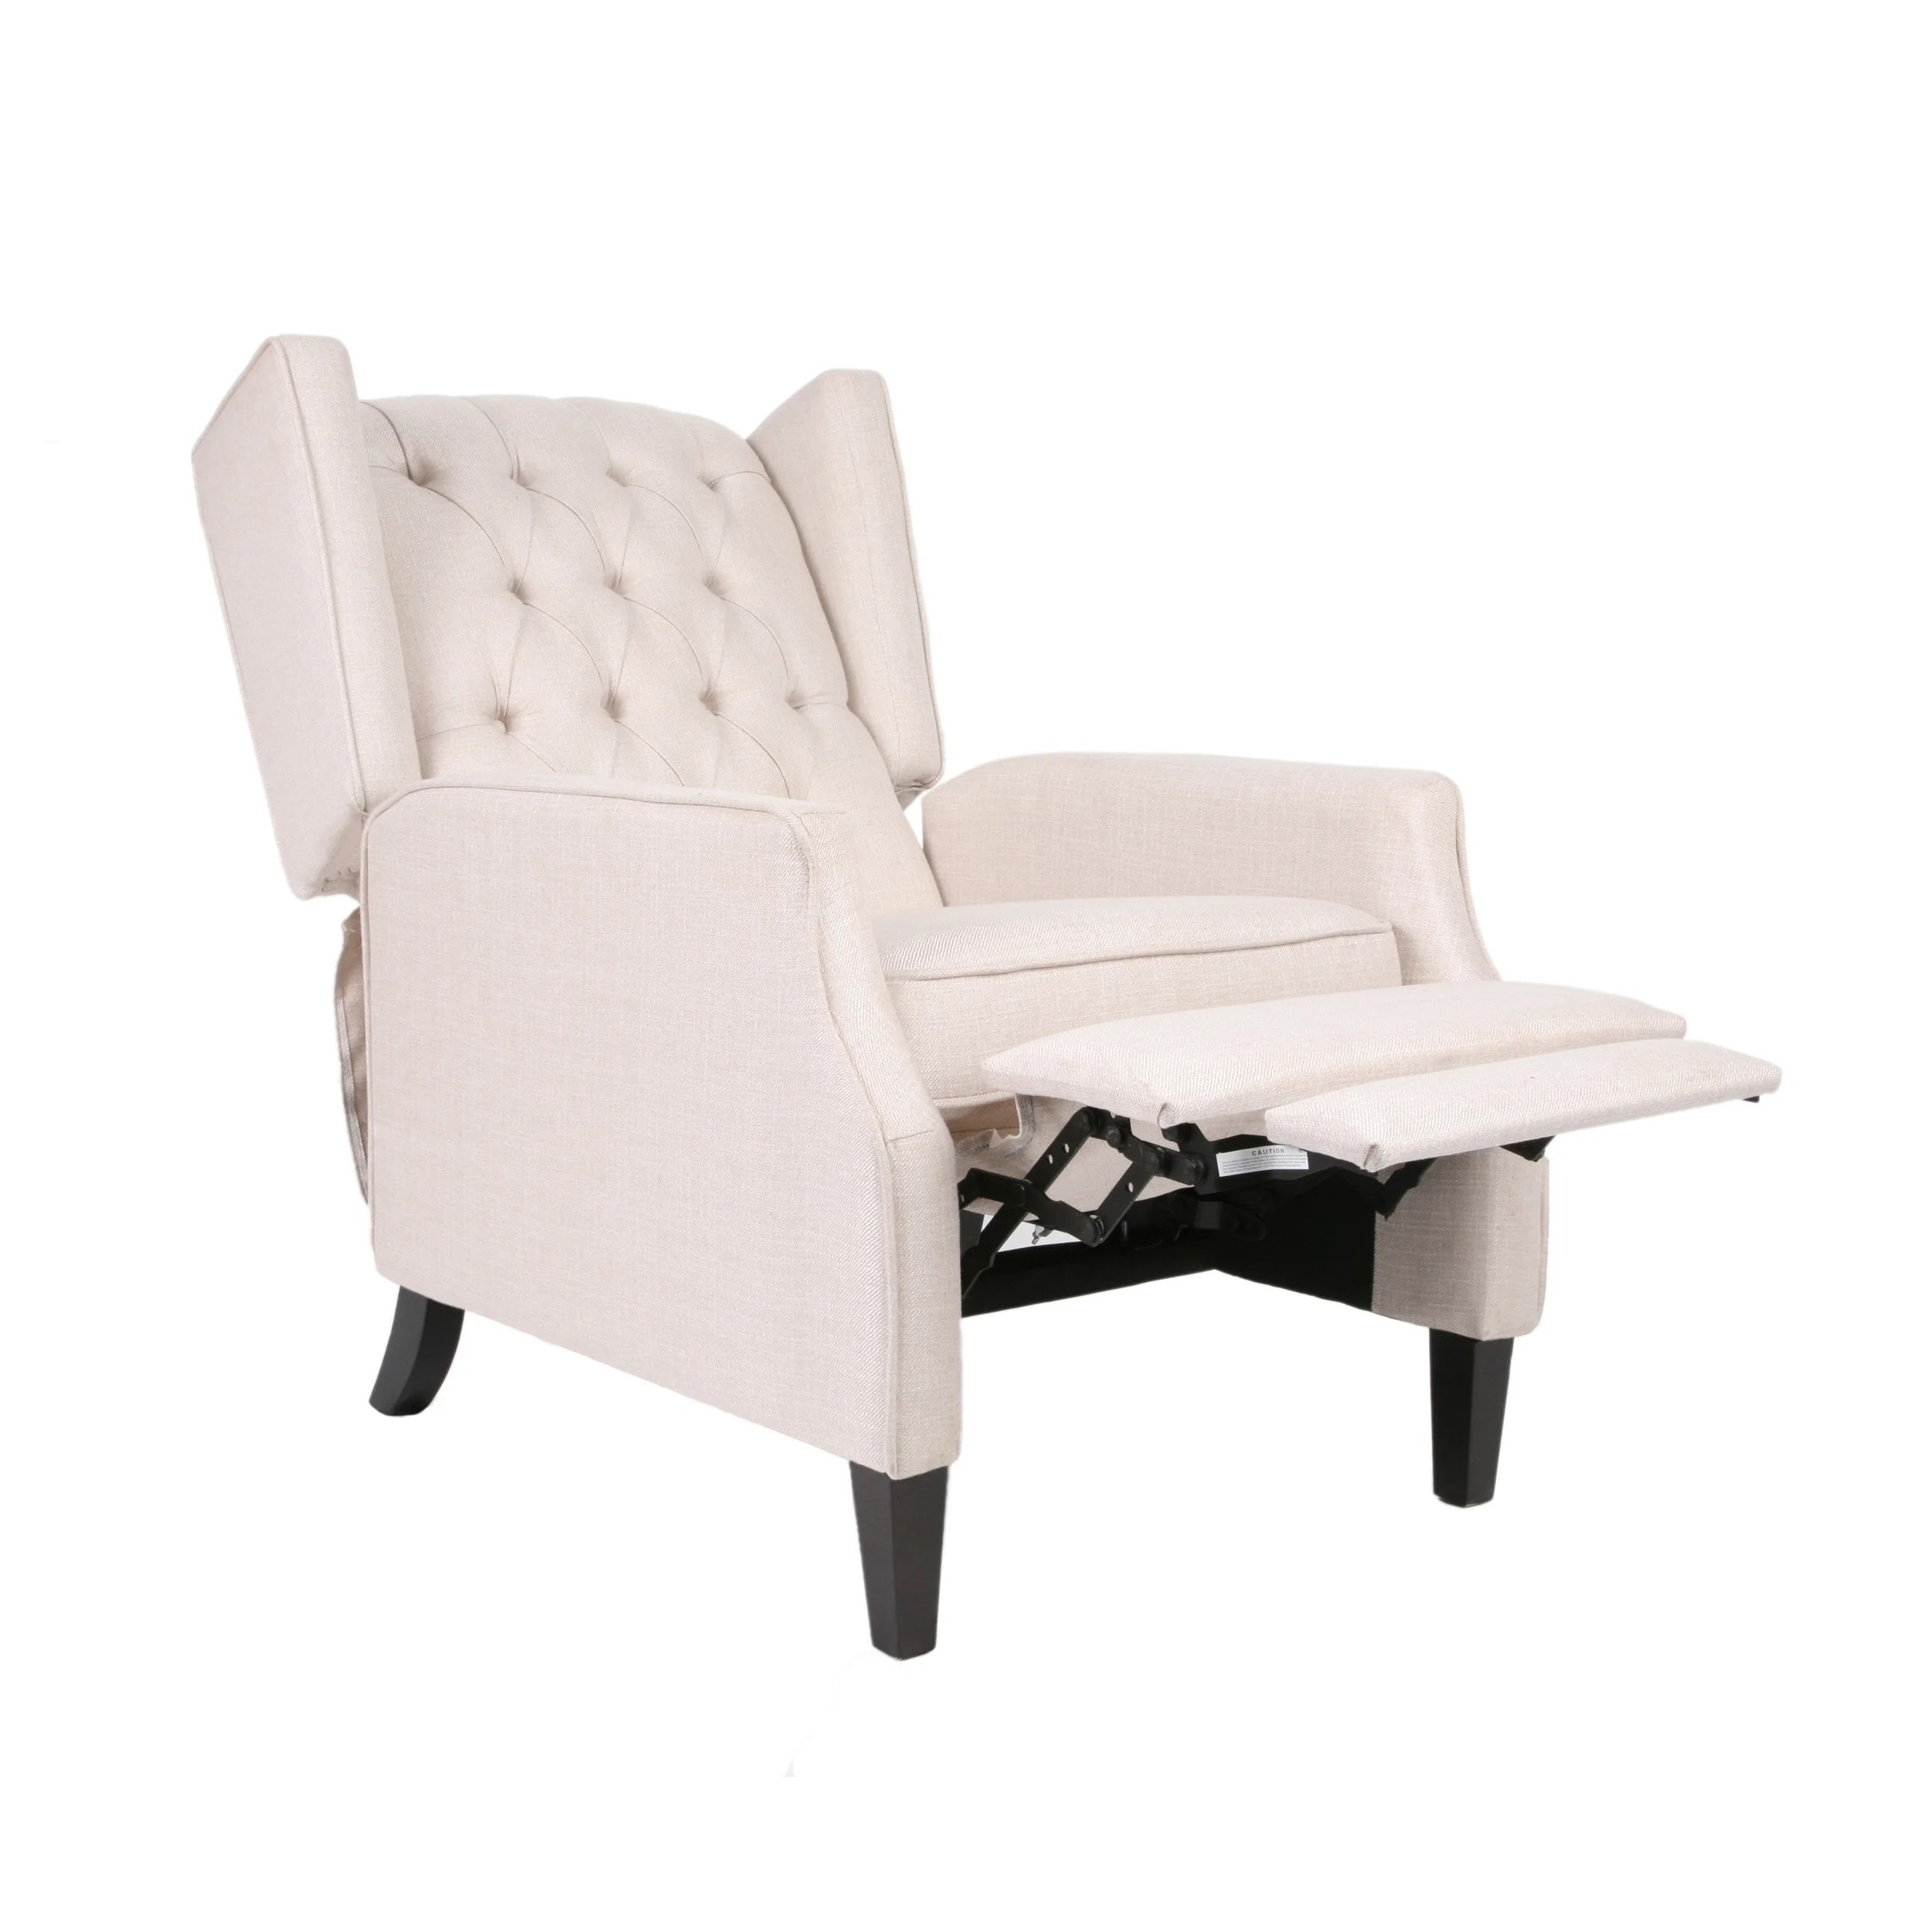 Wingback Recliner Chair Keating Traditional Wingback Recliner By Christopher Knight Home